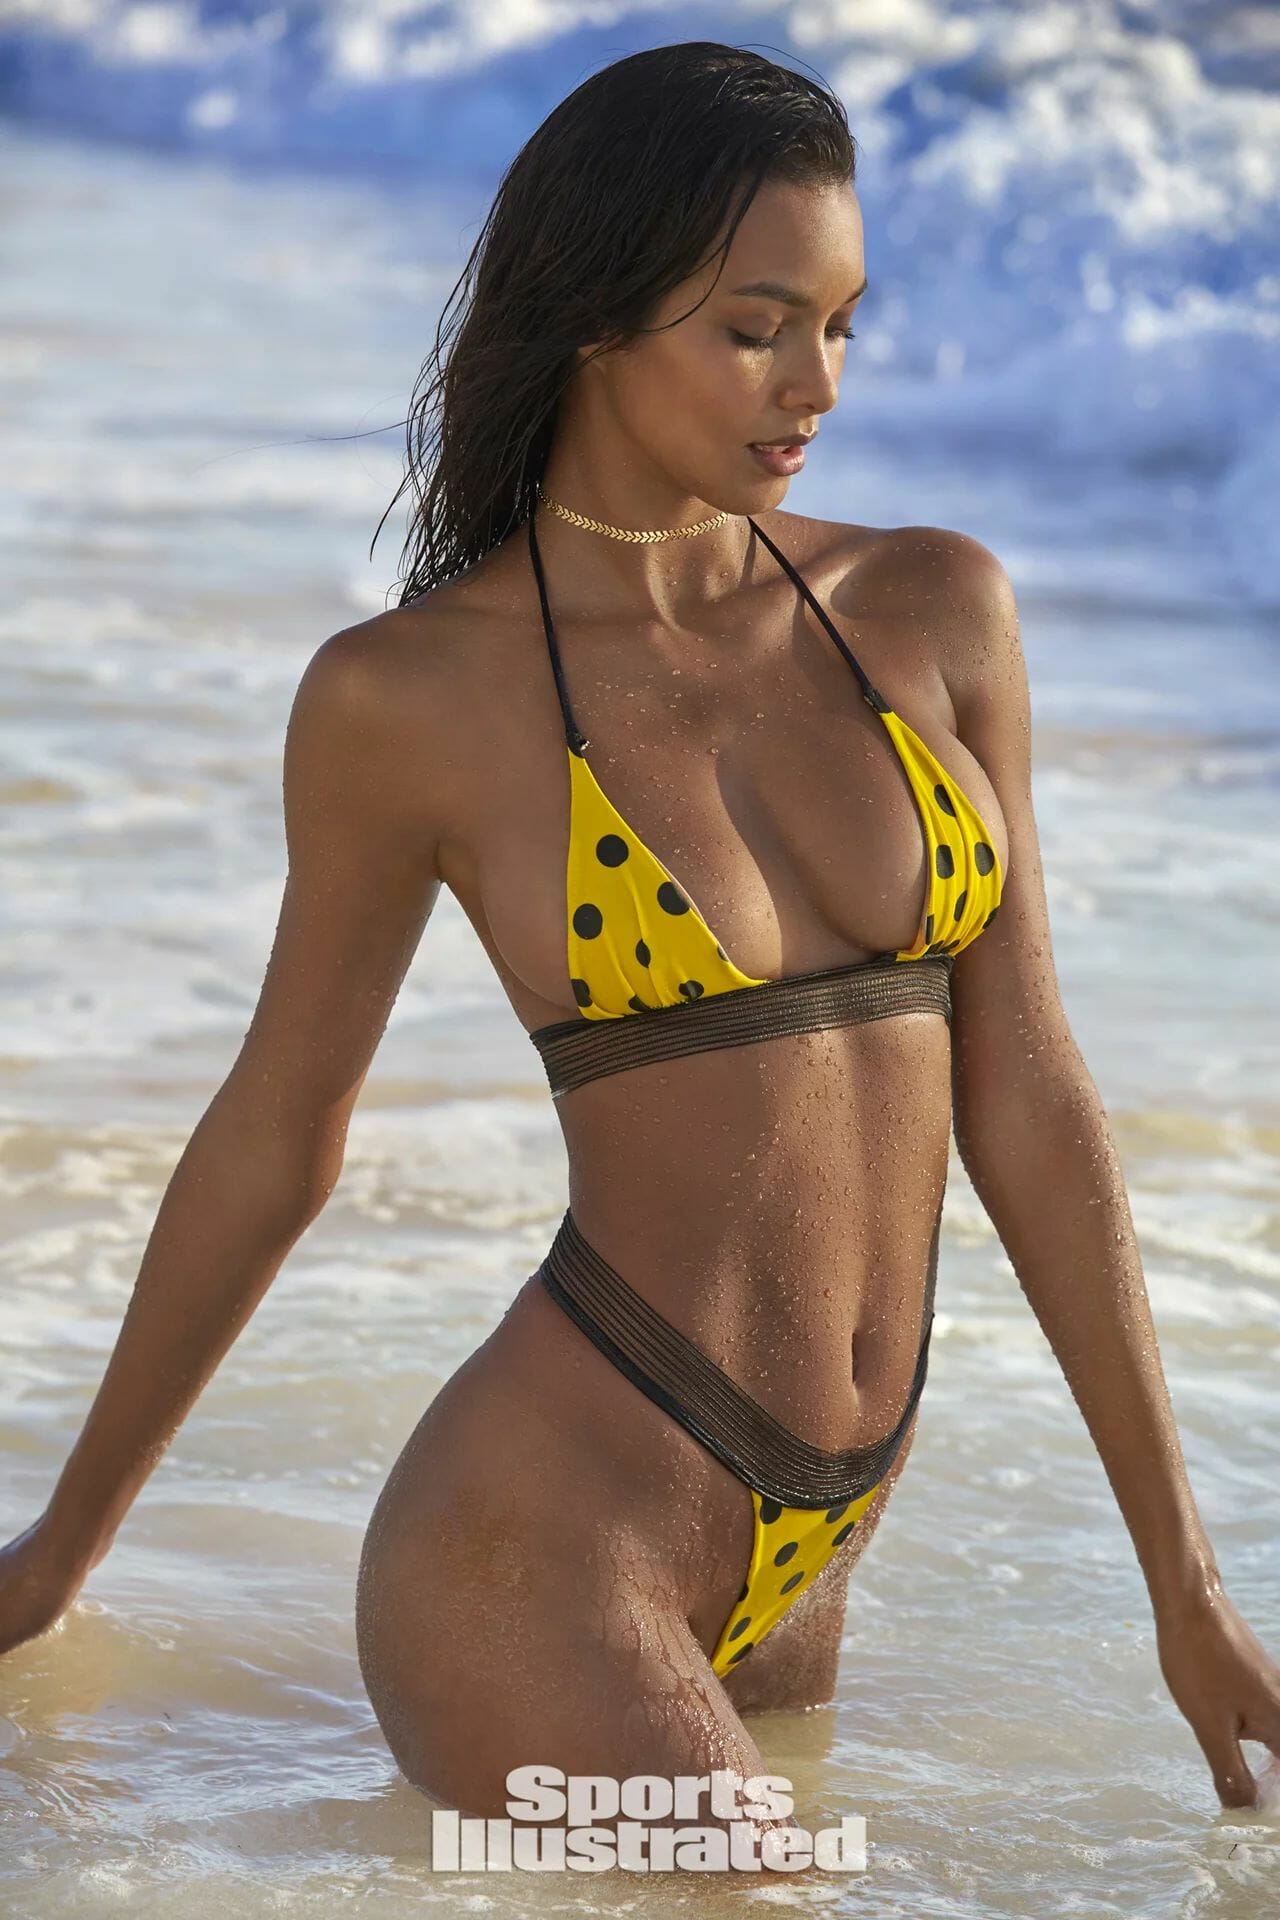 Lais Ribeiro showing boobs